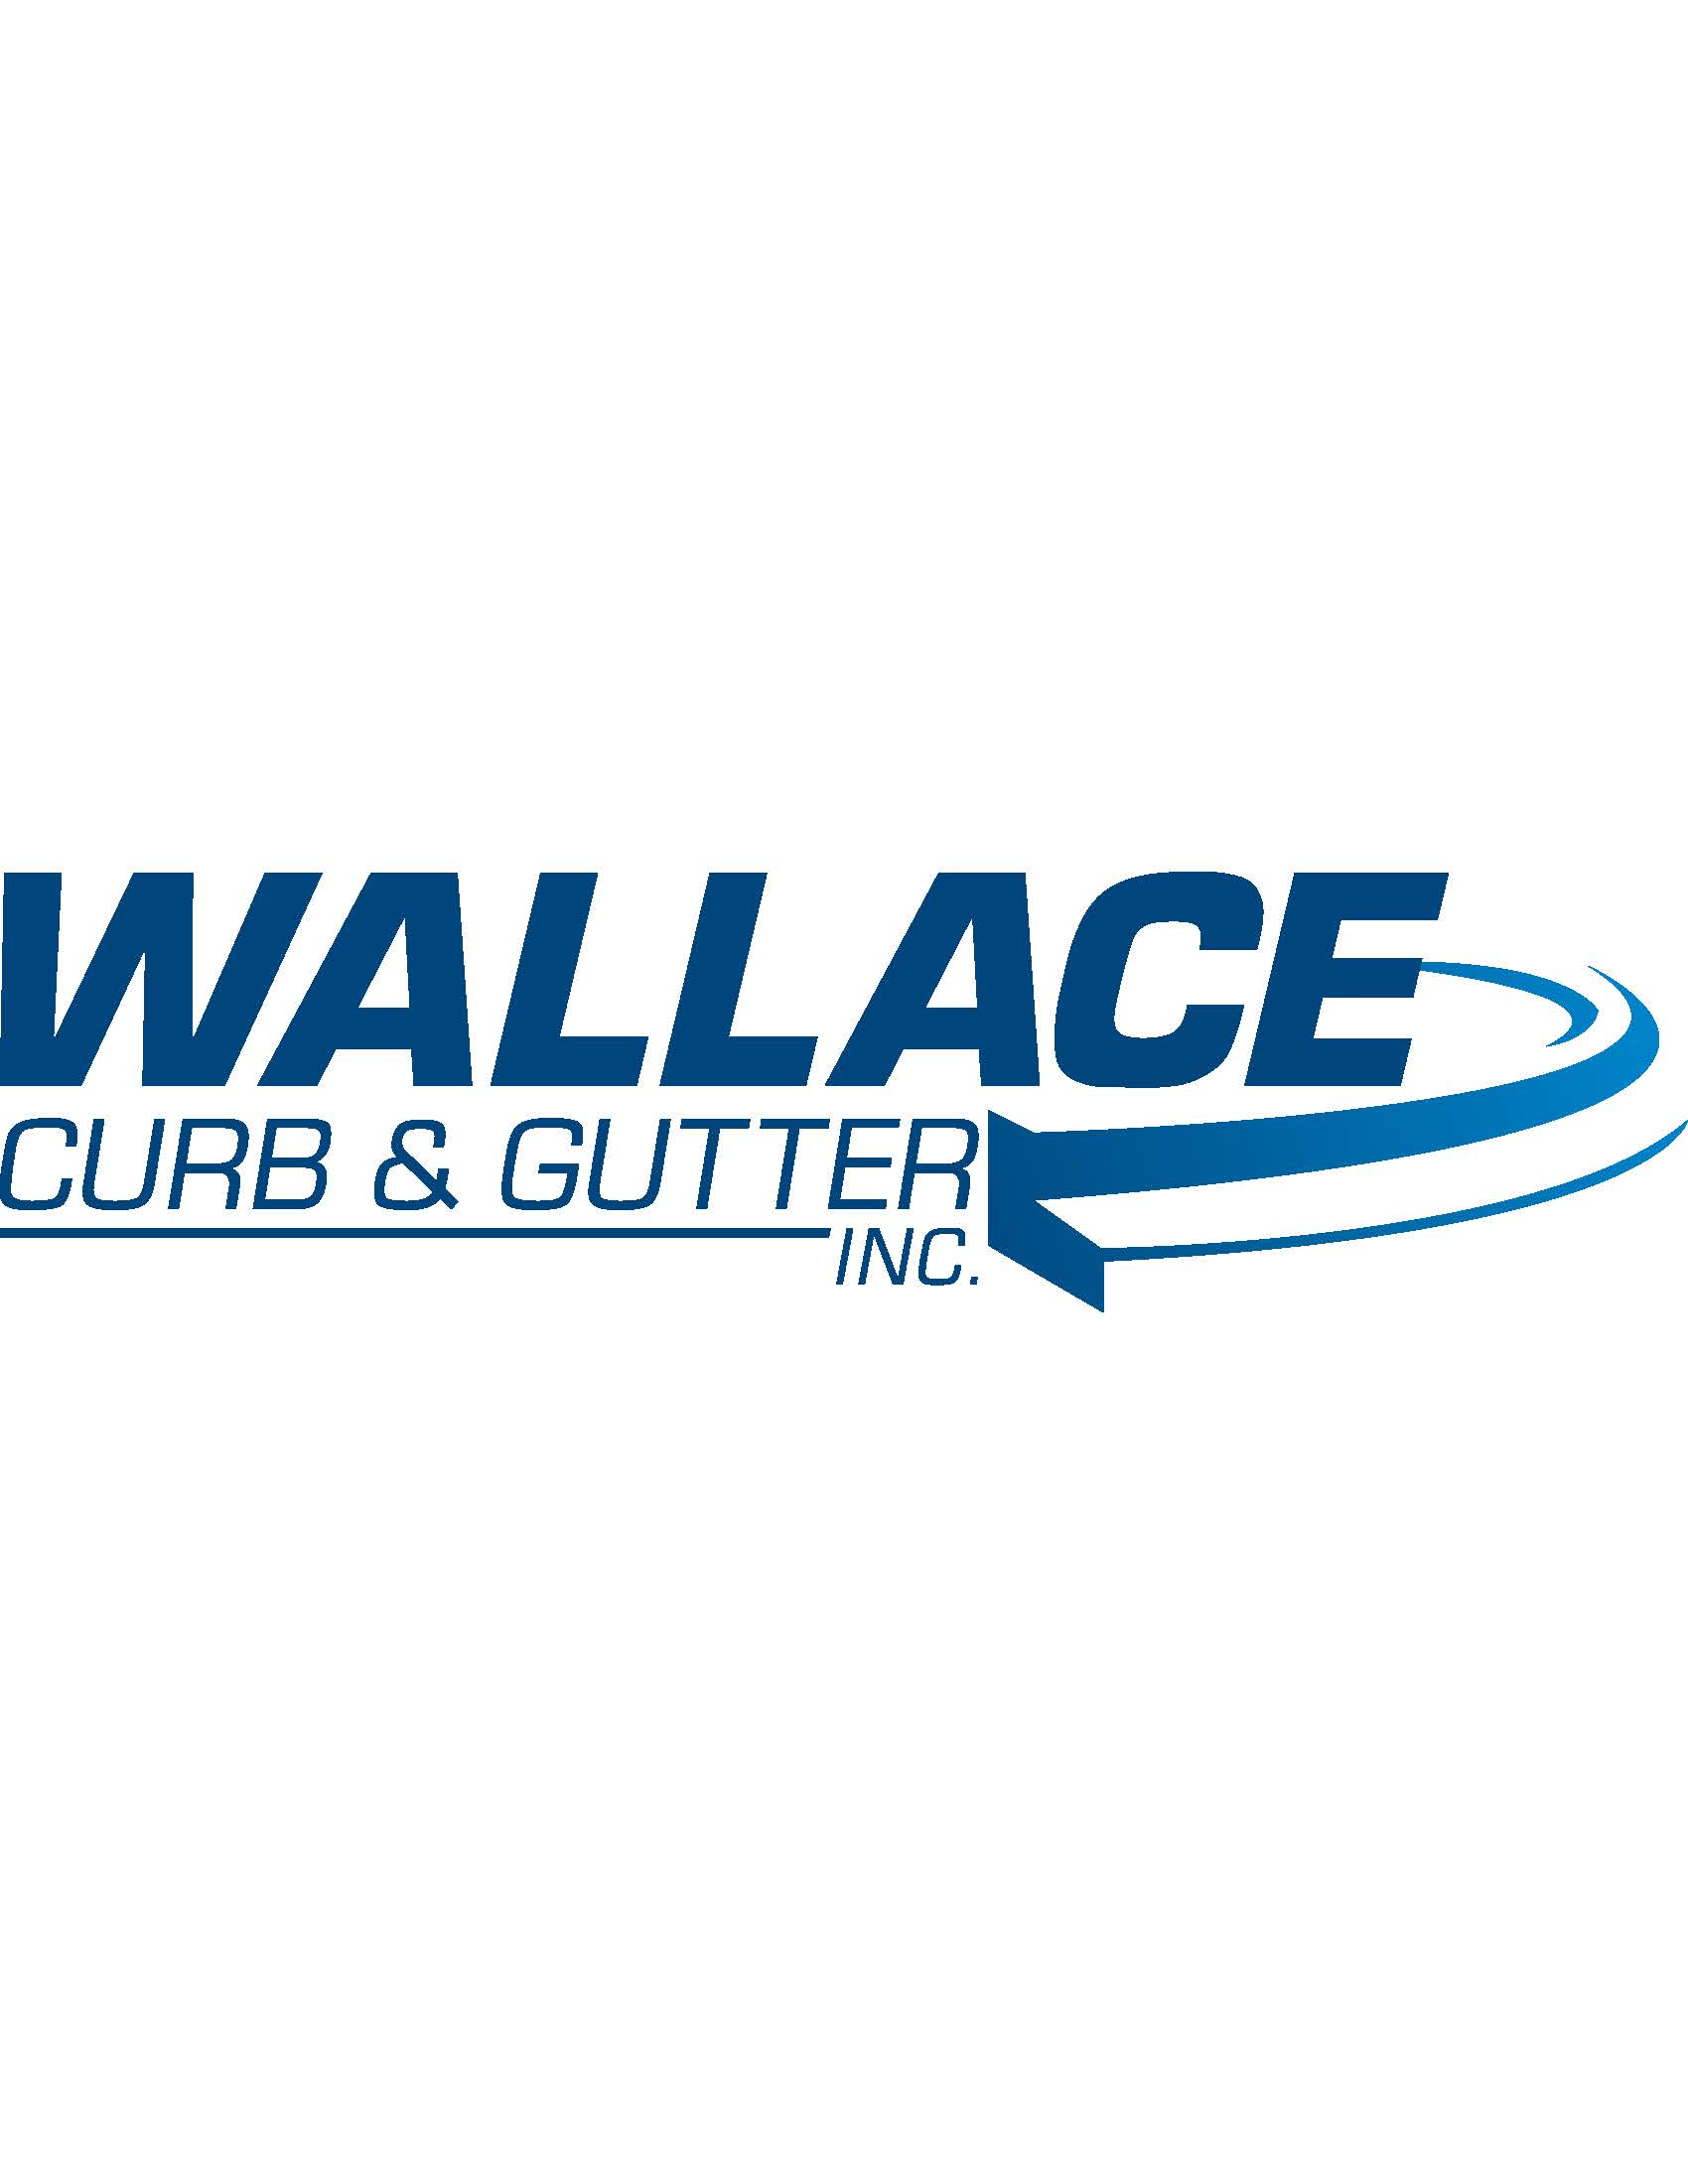 Chipping Contest Sponsor - Wallace Curb & Gutter - Logo